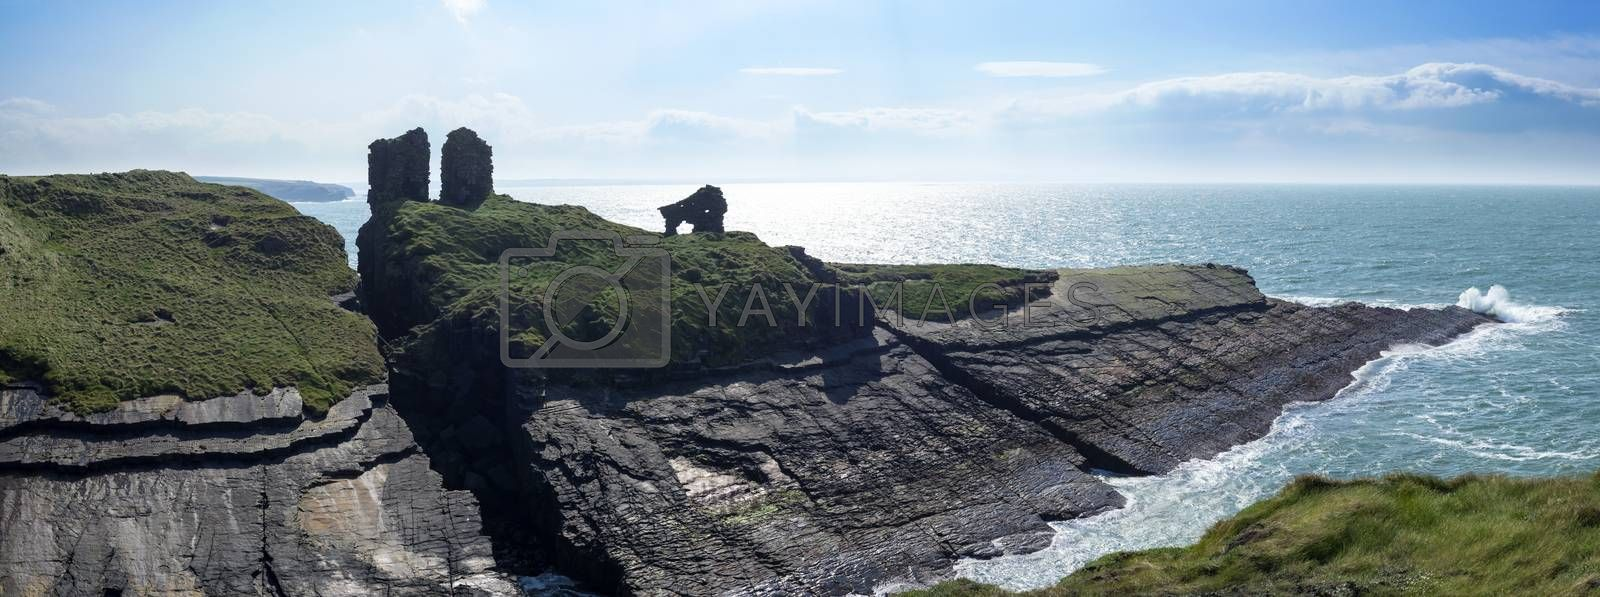 lick castle in county kerry ireland on the wild atlantic way panorama